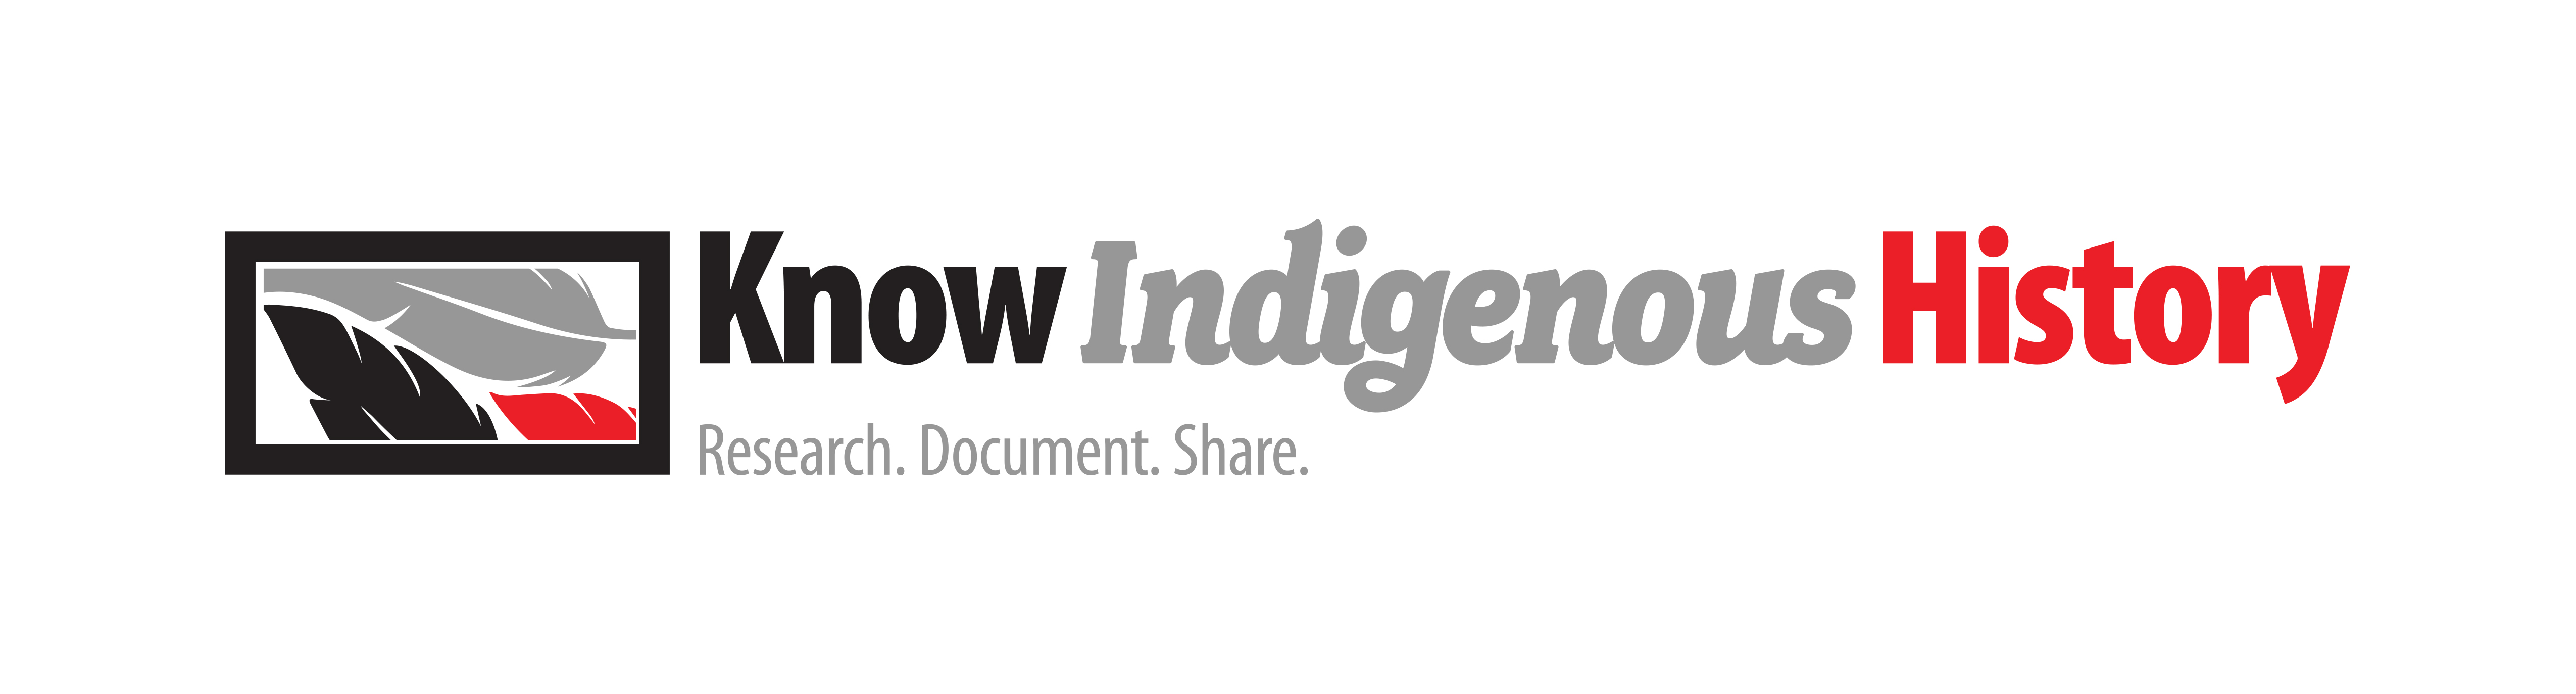 know-indigenous-history